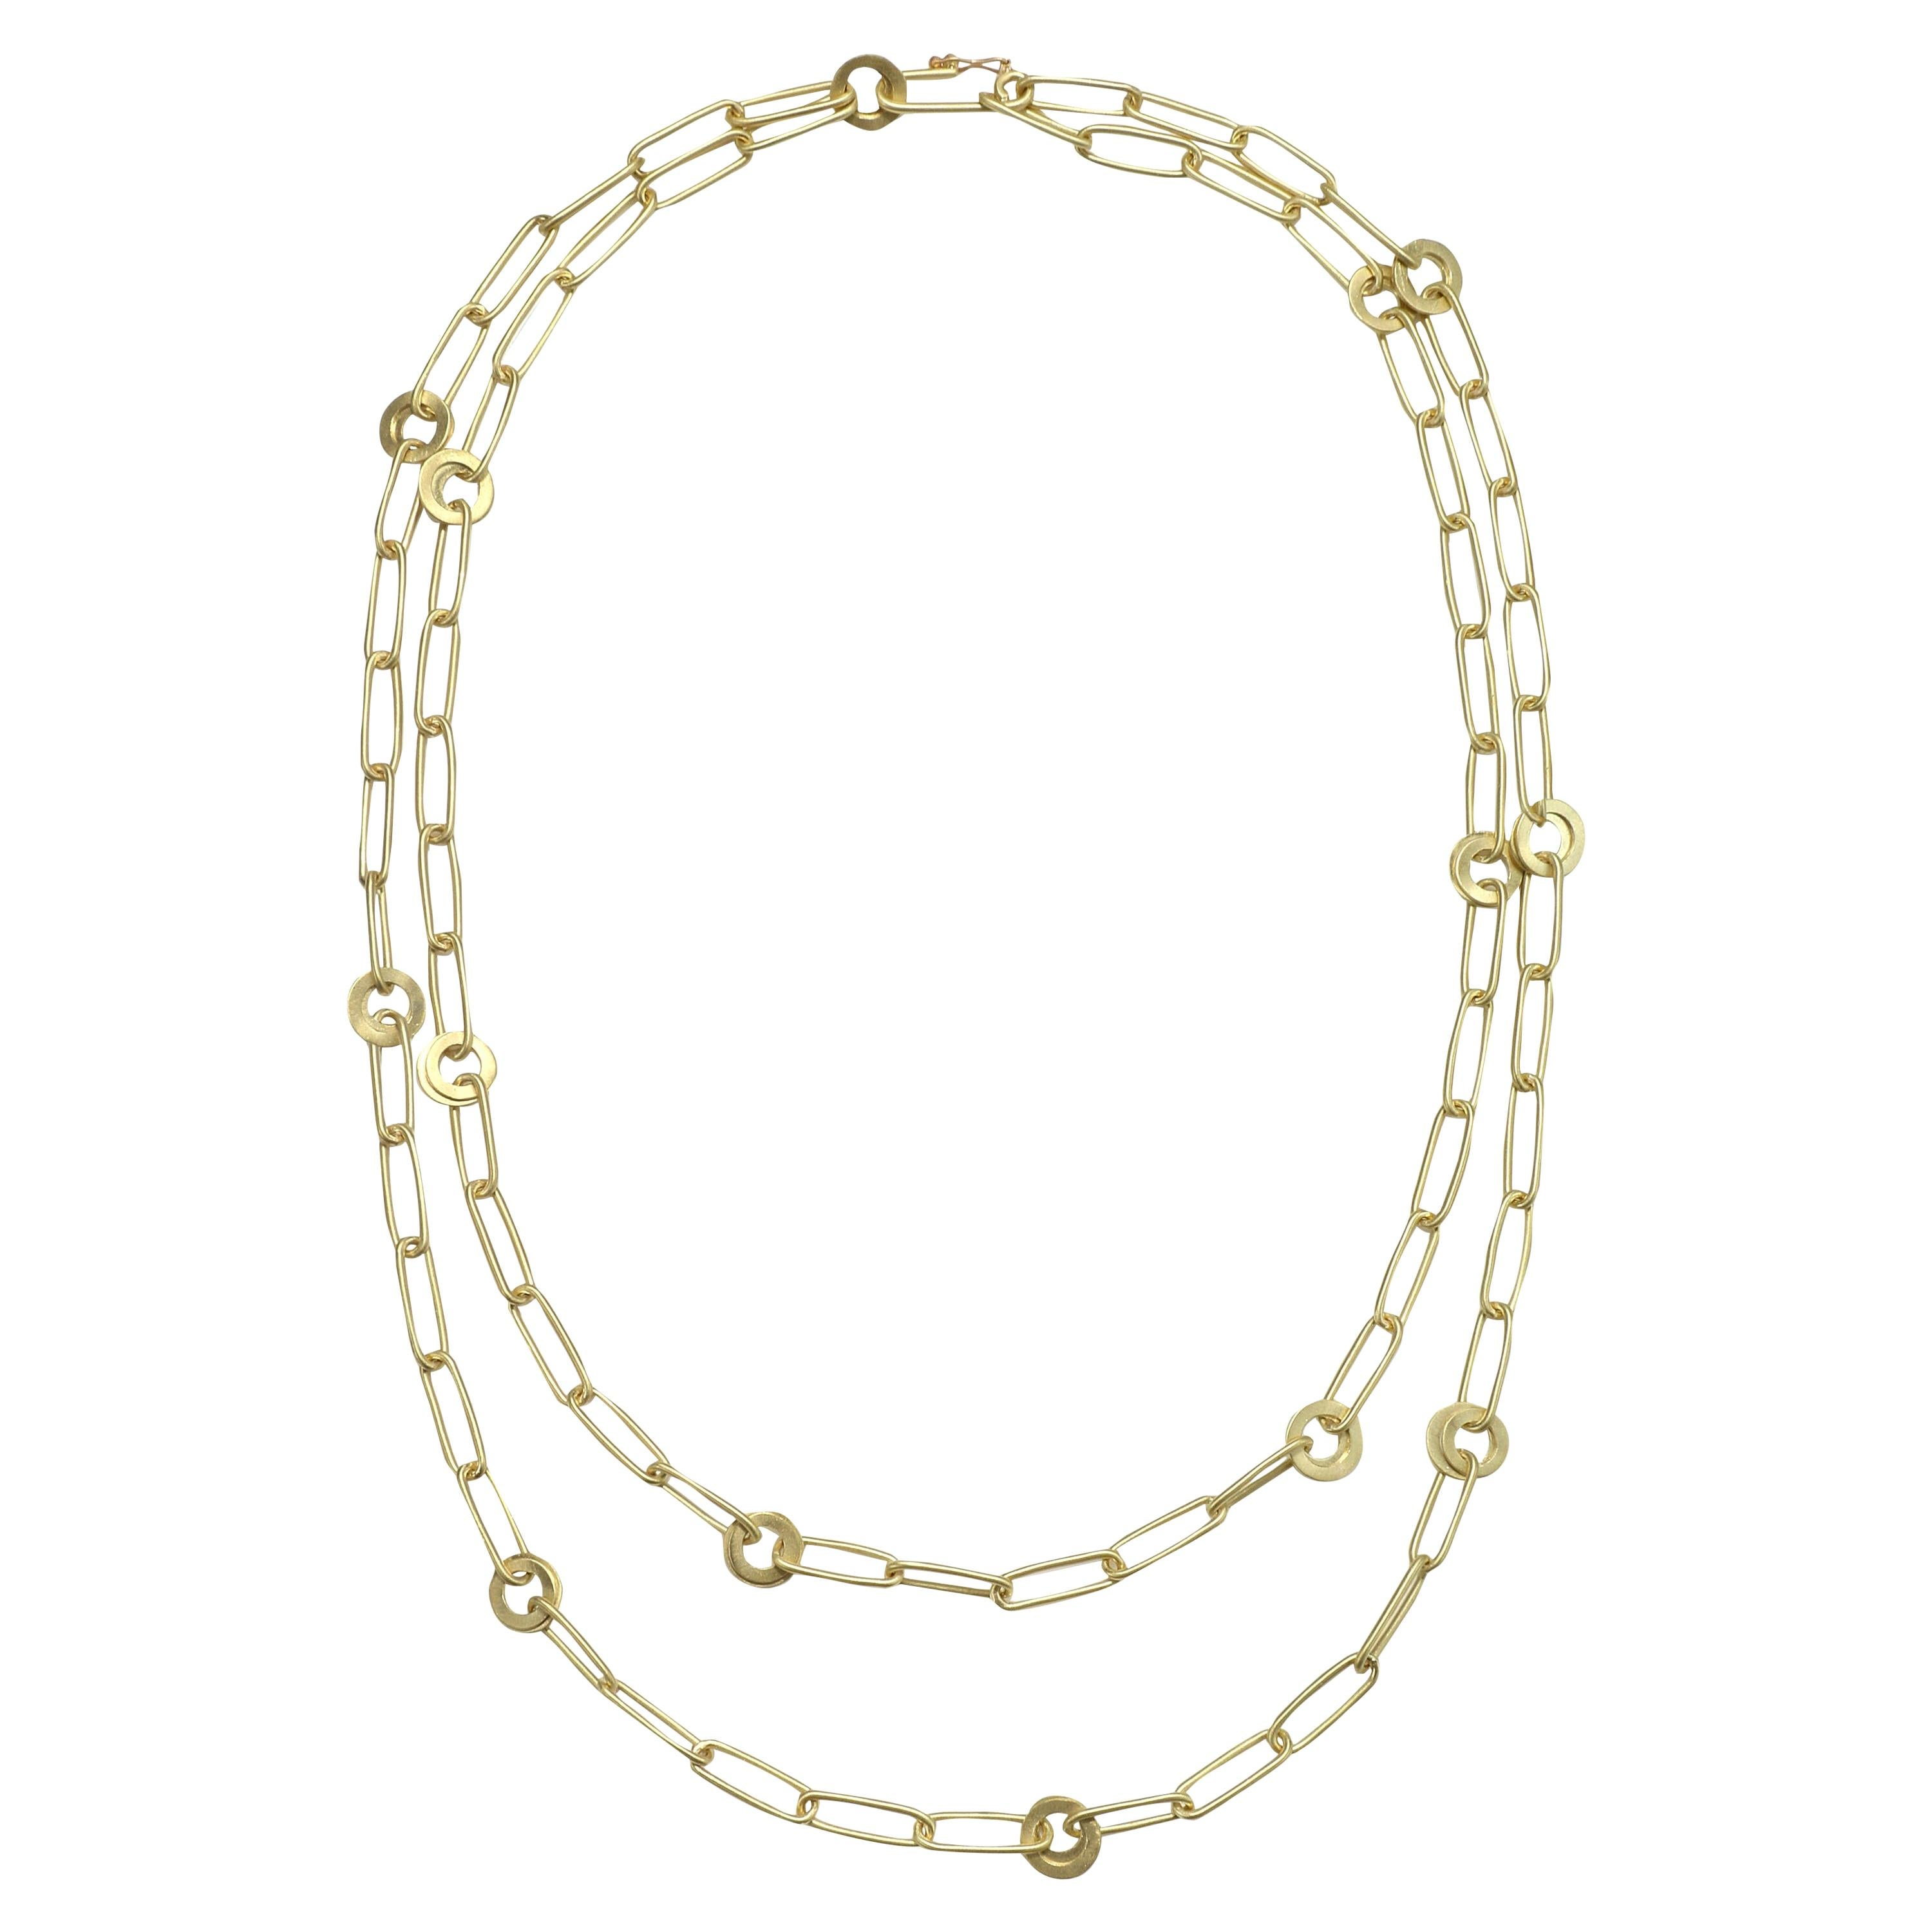 Faye Kim 18 Karat Gold Handmade Long Paper Clip Chain Link Necklace